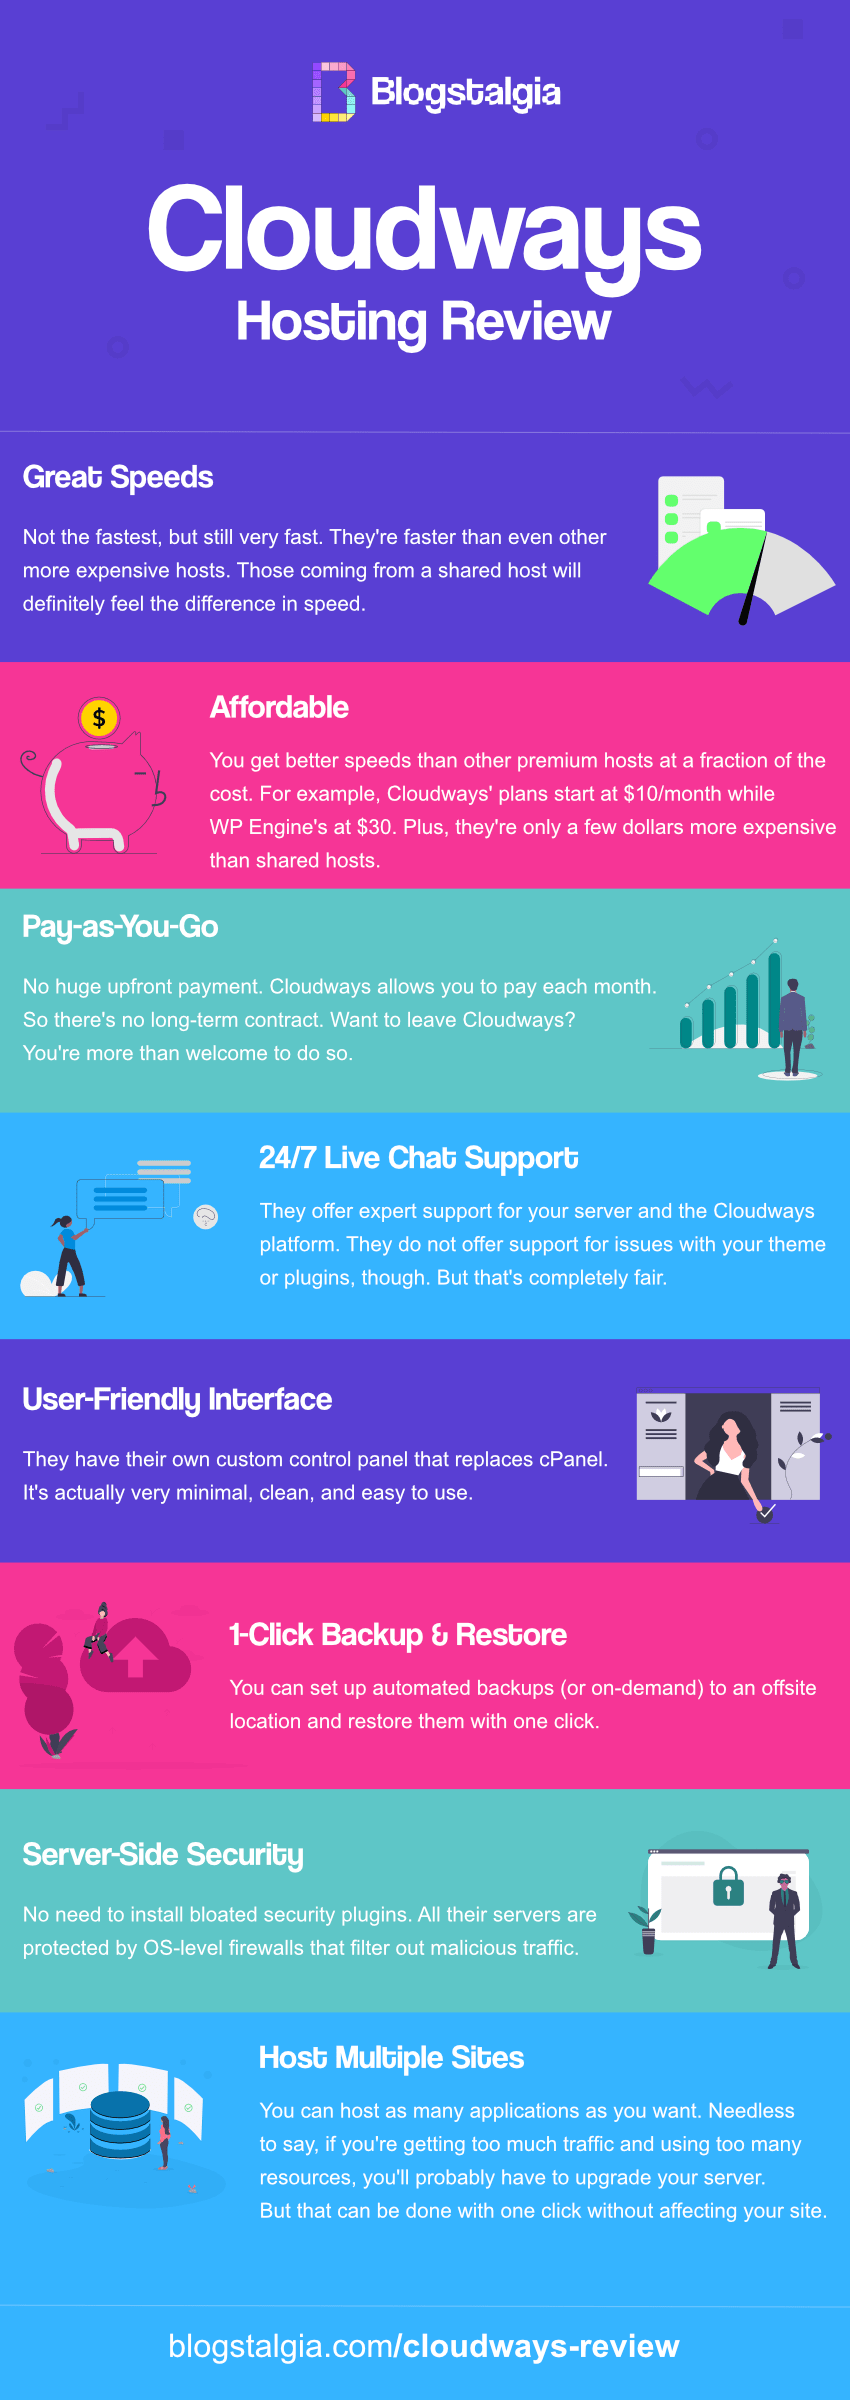 Cloudways Review Infographic